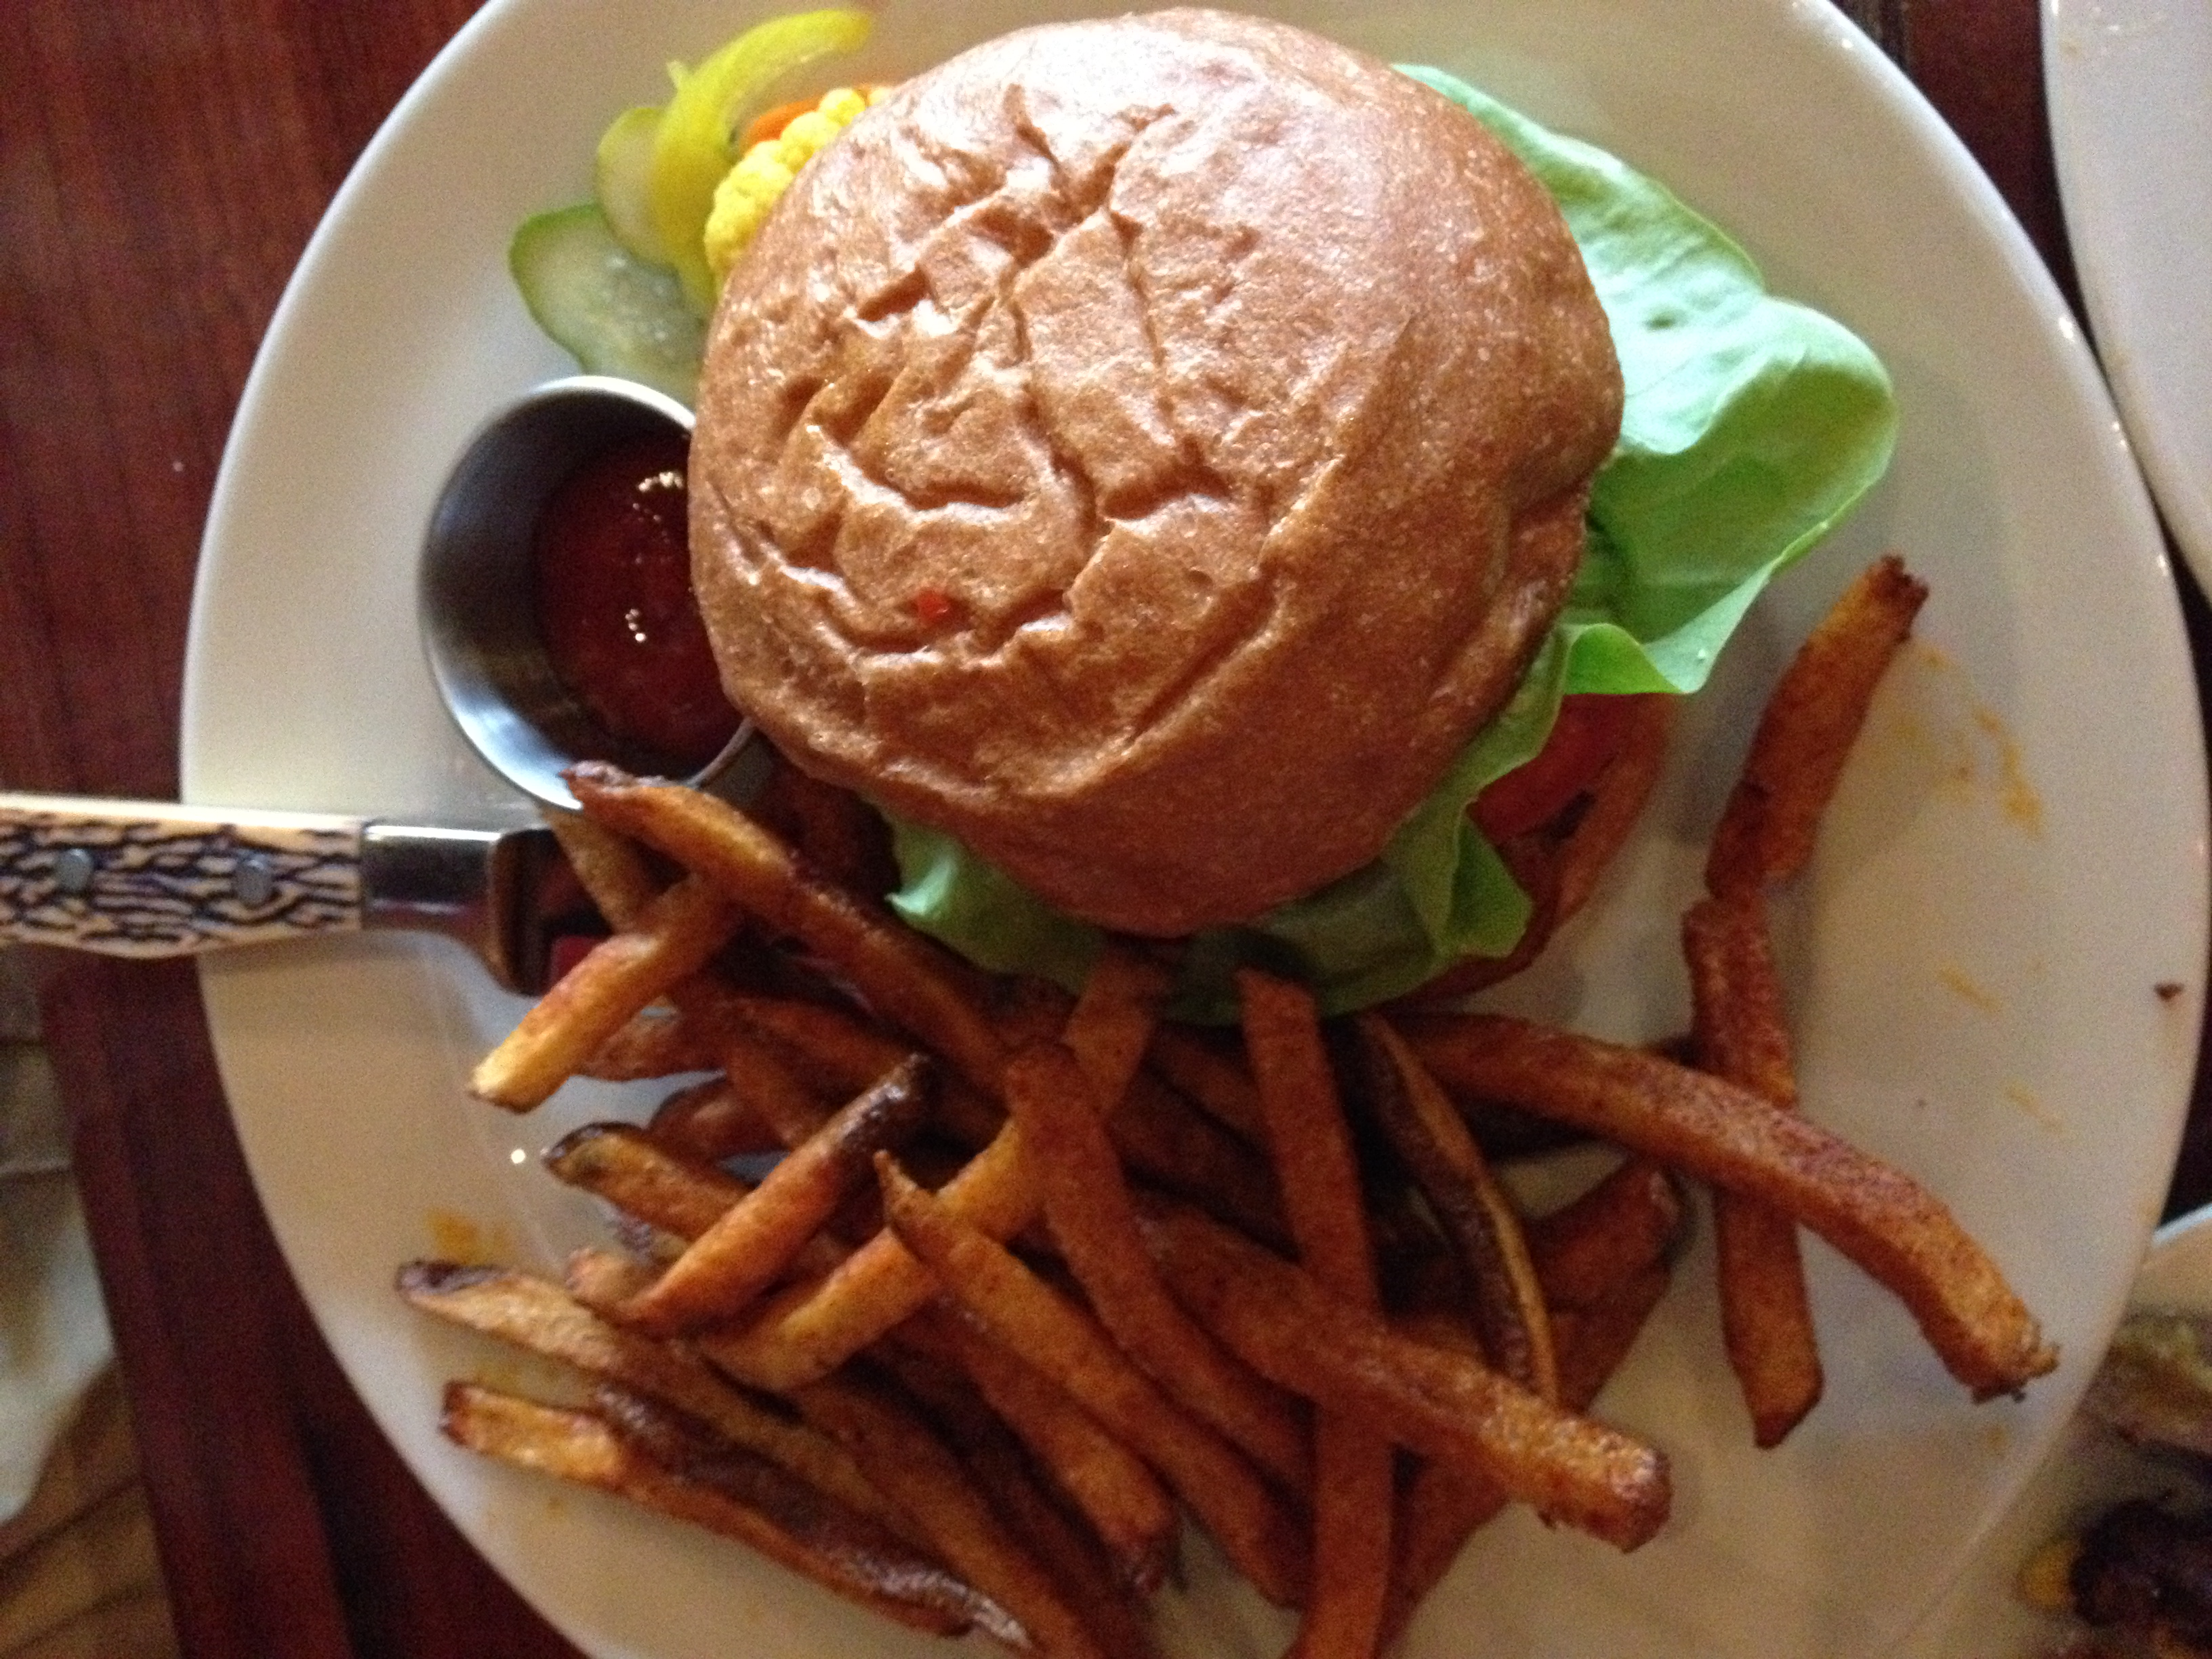 Burgs and fries